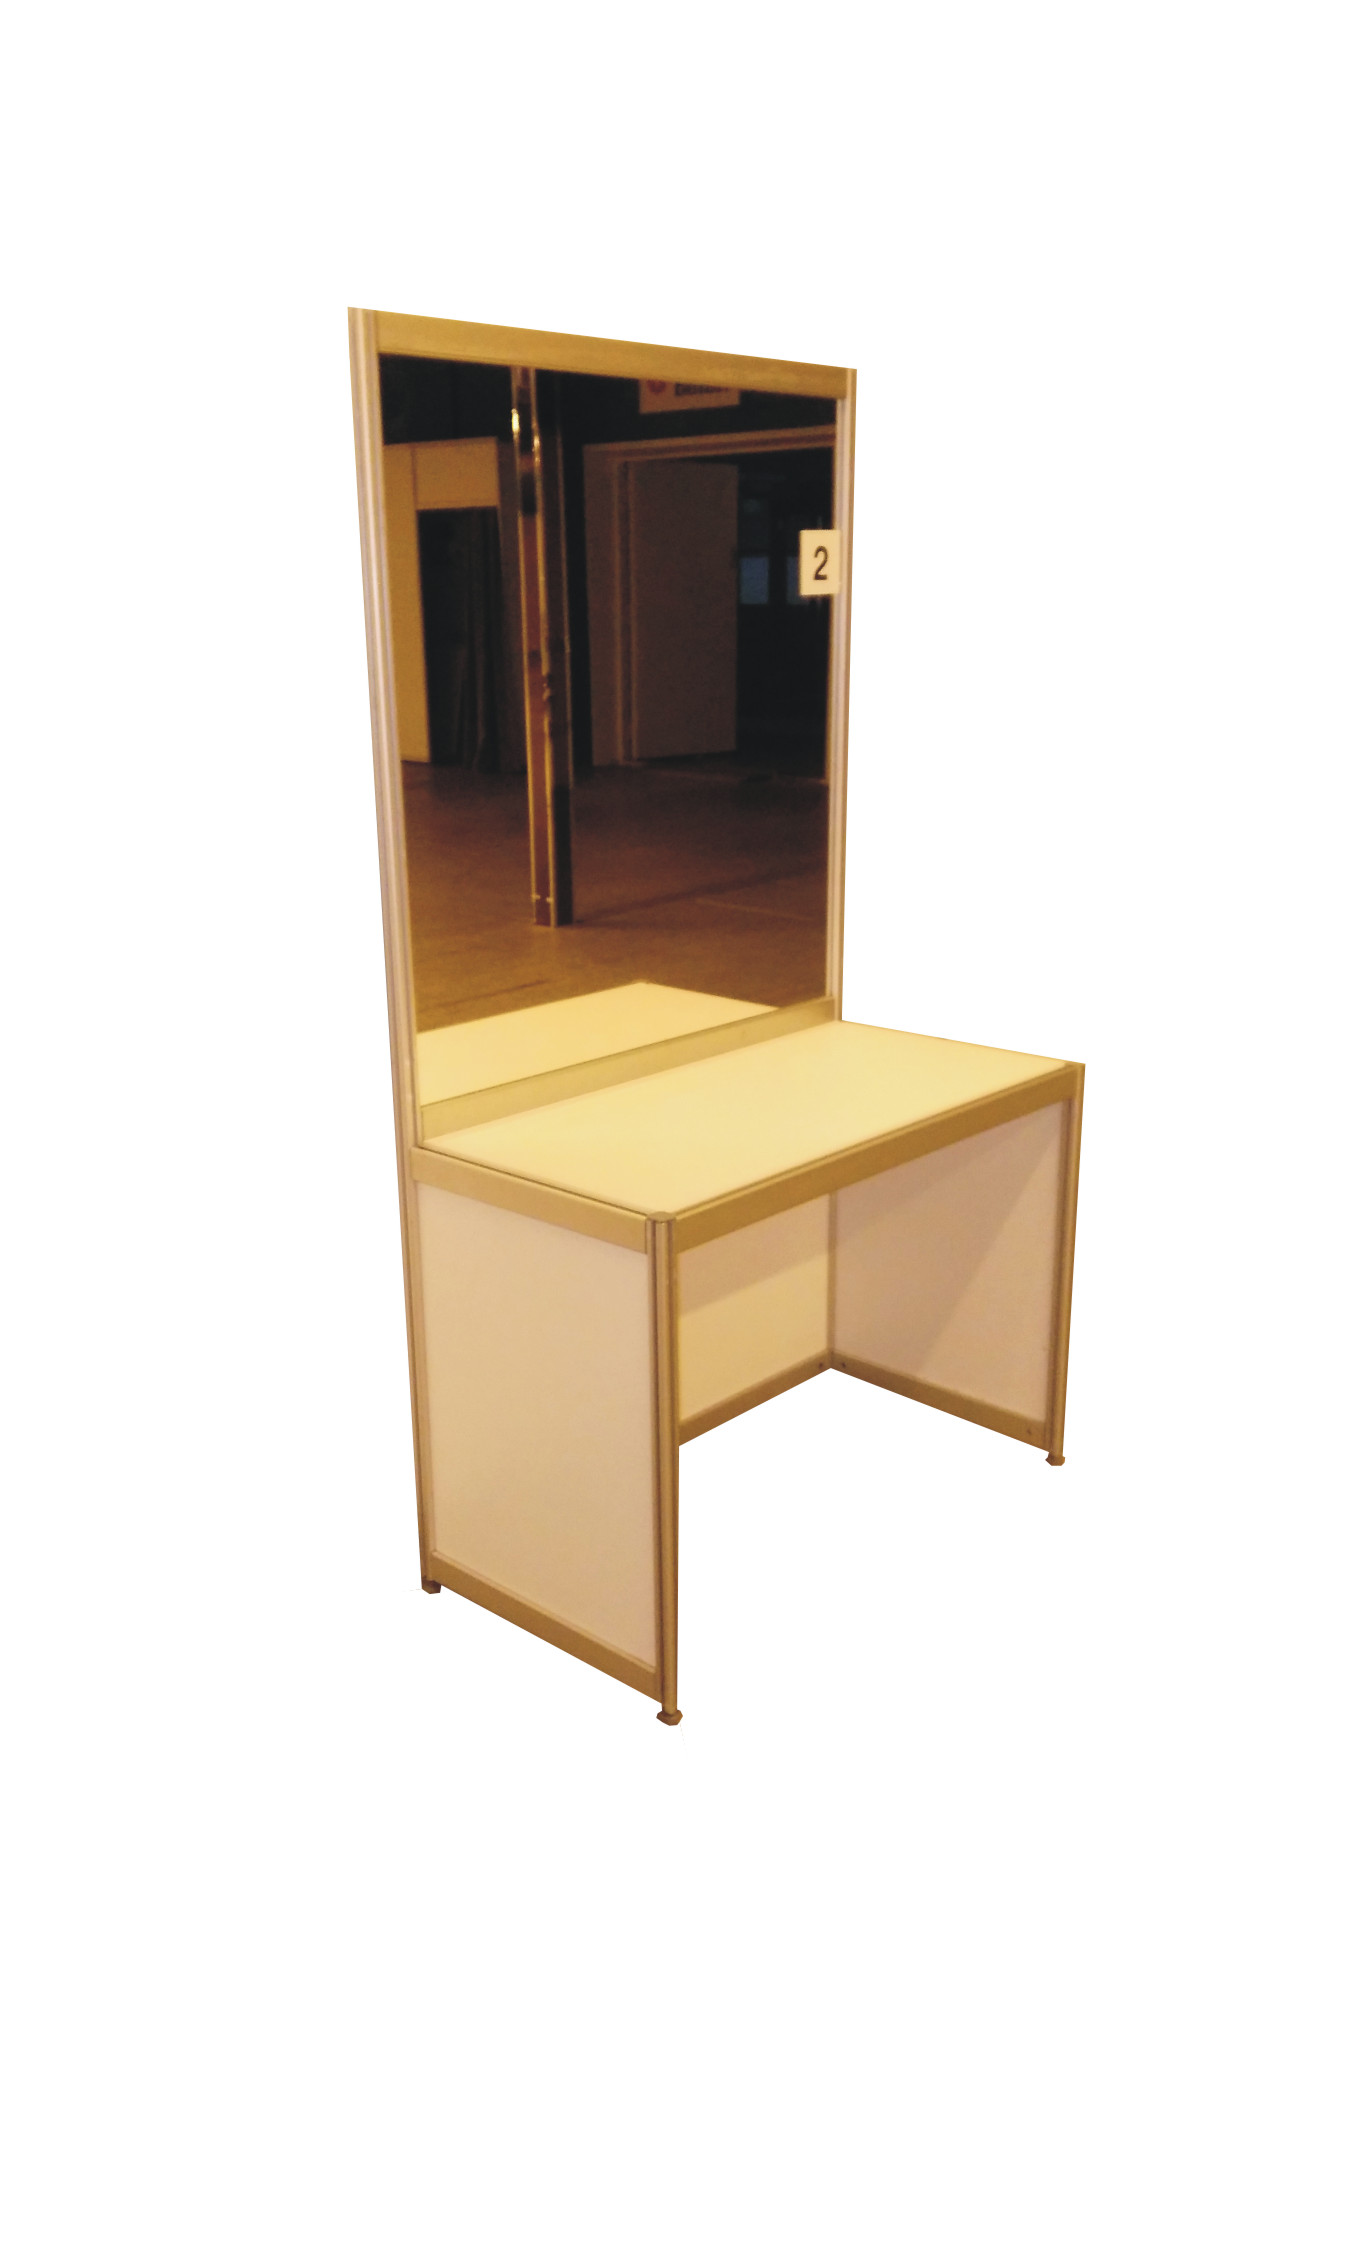 Dressing 200 Cm Make Up Dressing Table 53 103 H 200cm Table Height 70cm